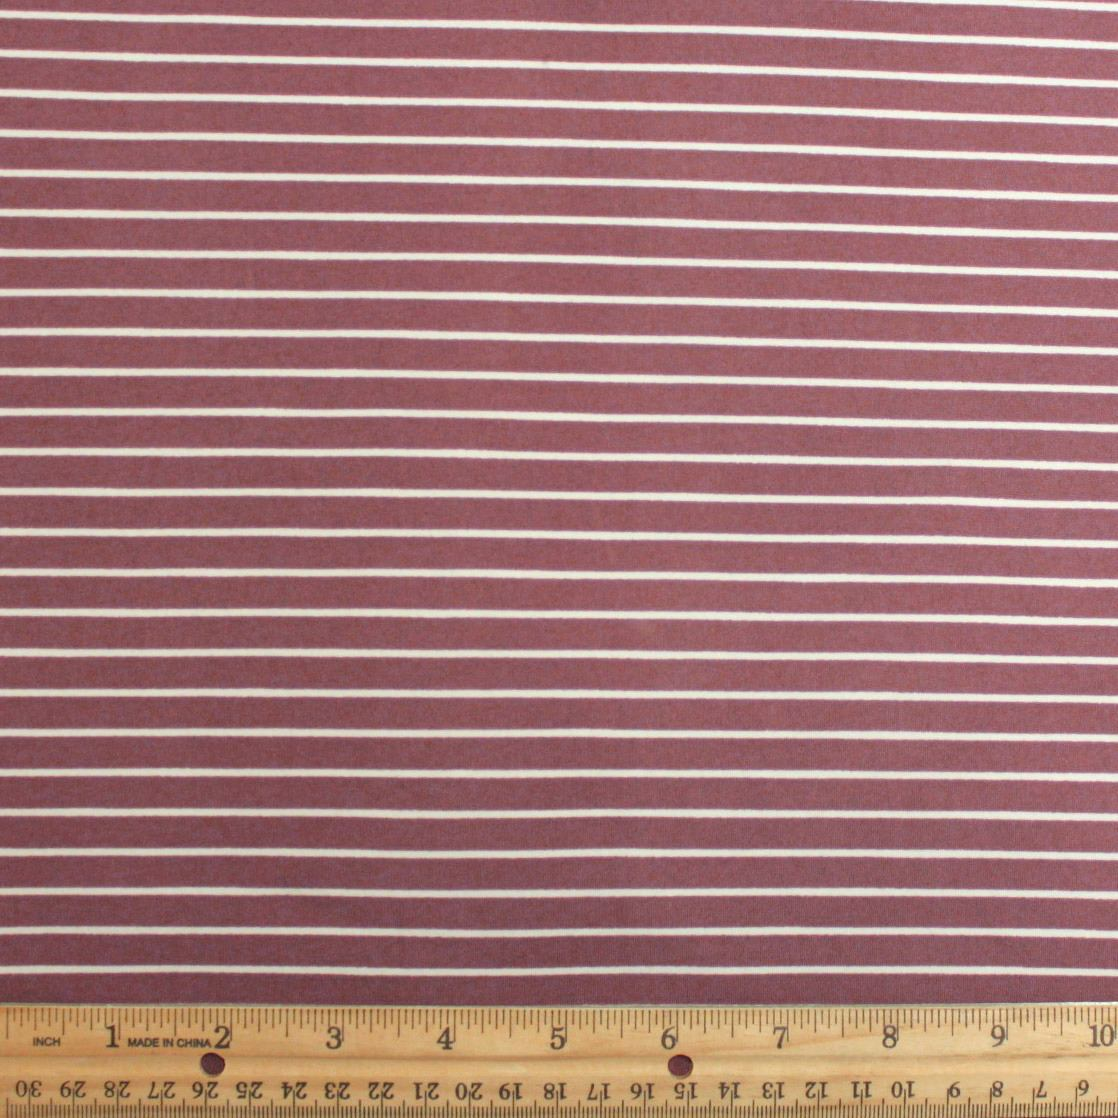 Dark Mauve Light Burgundy and Off White Stripe Double Brushed Poly Spandex Knit, 1 yard